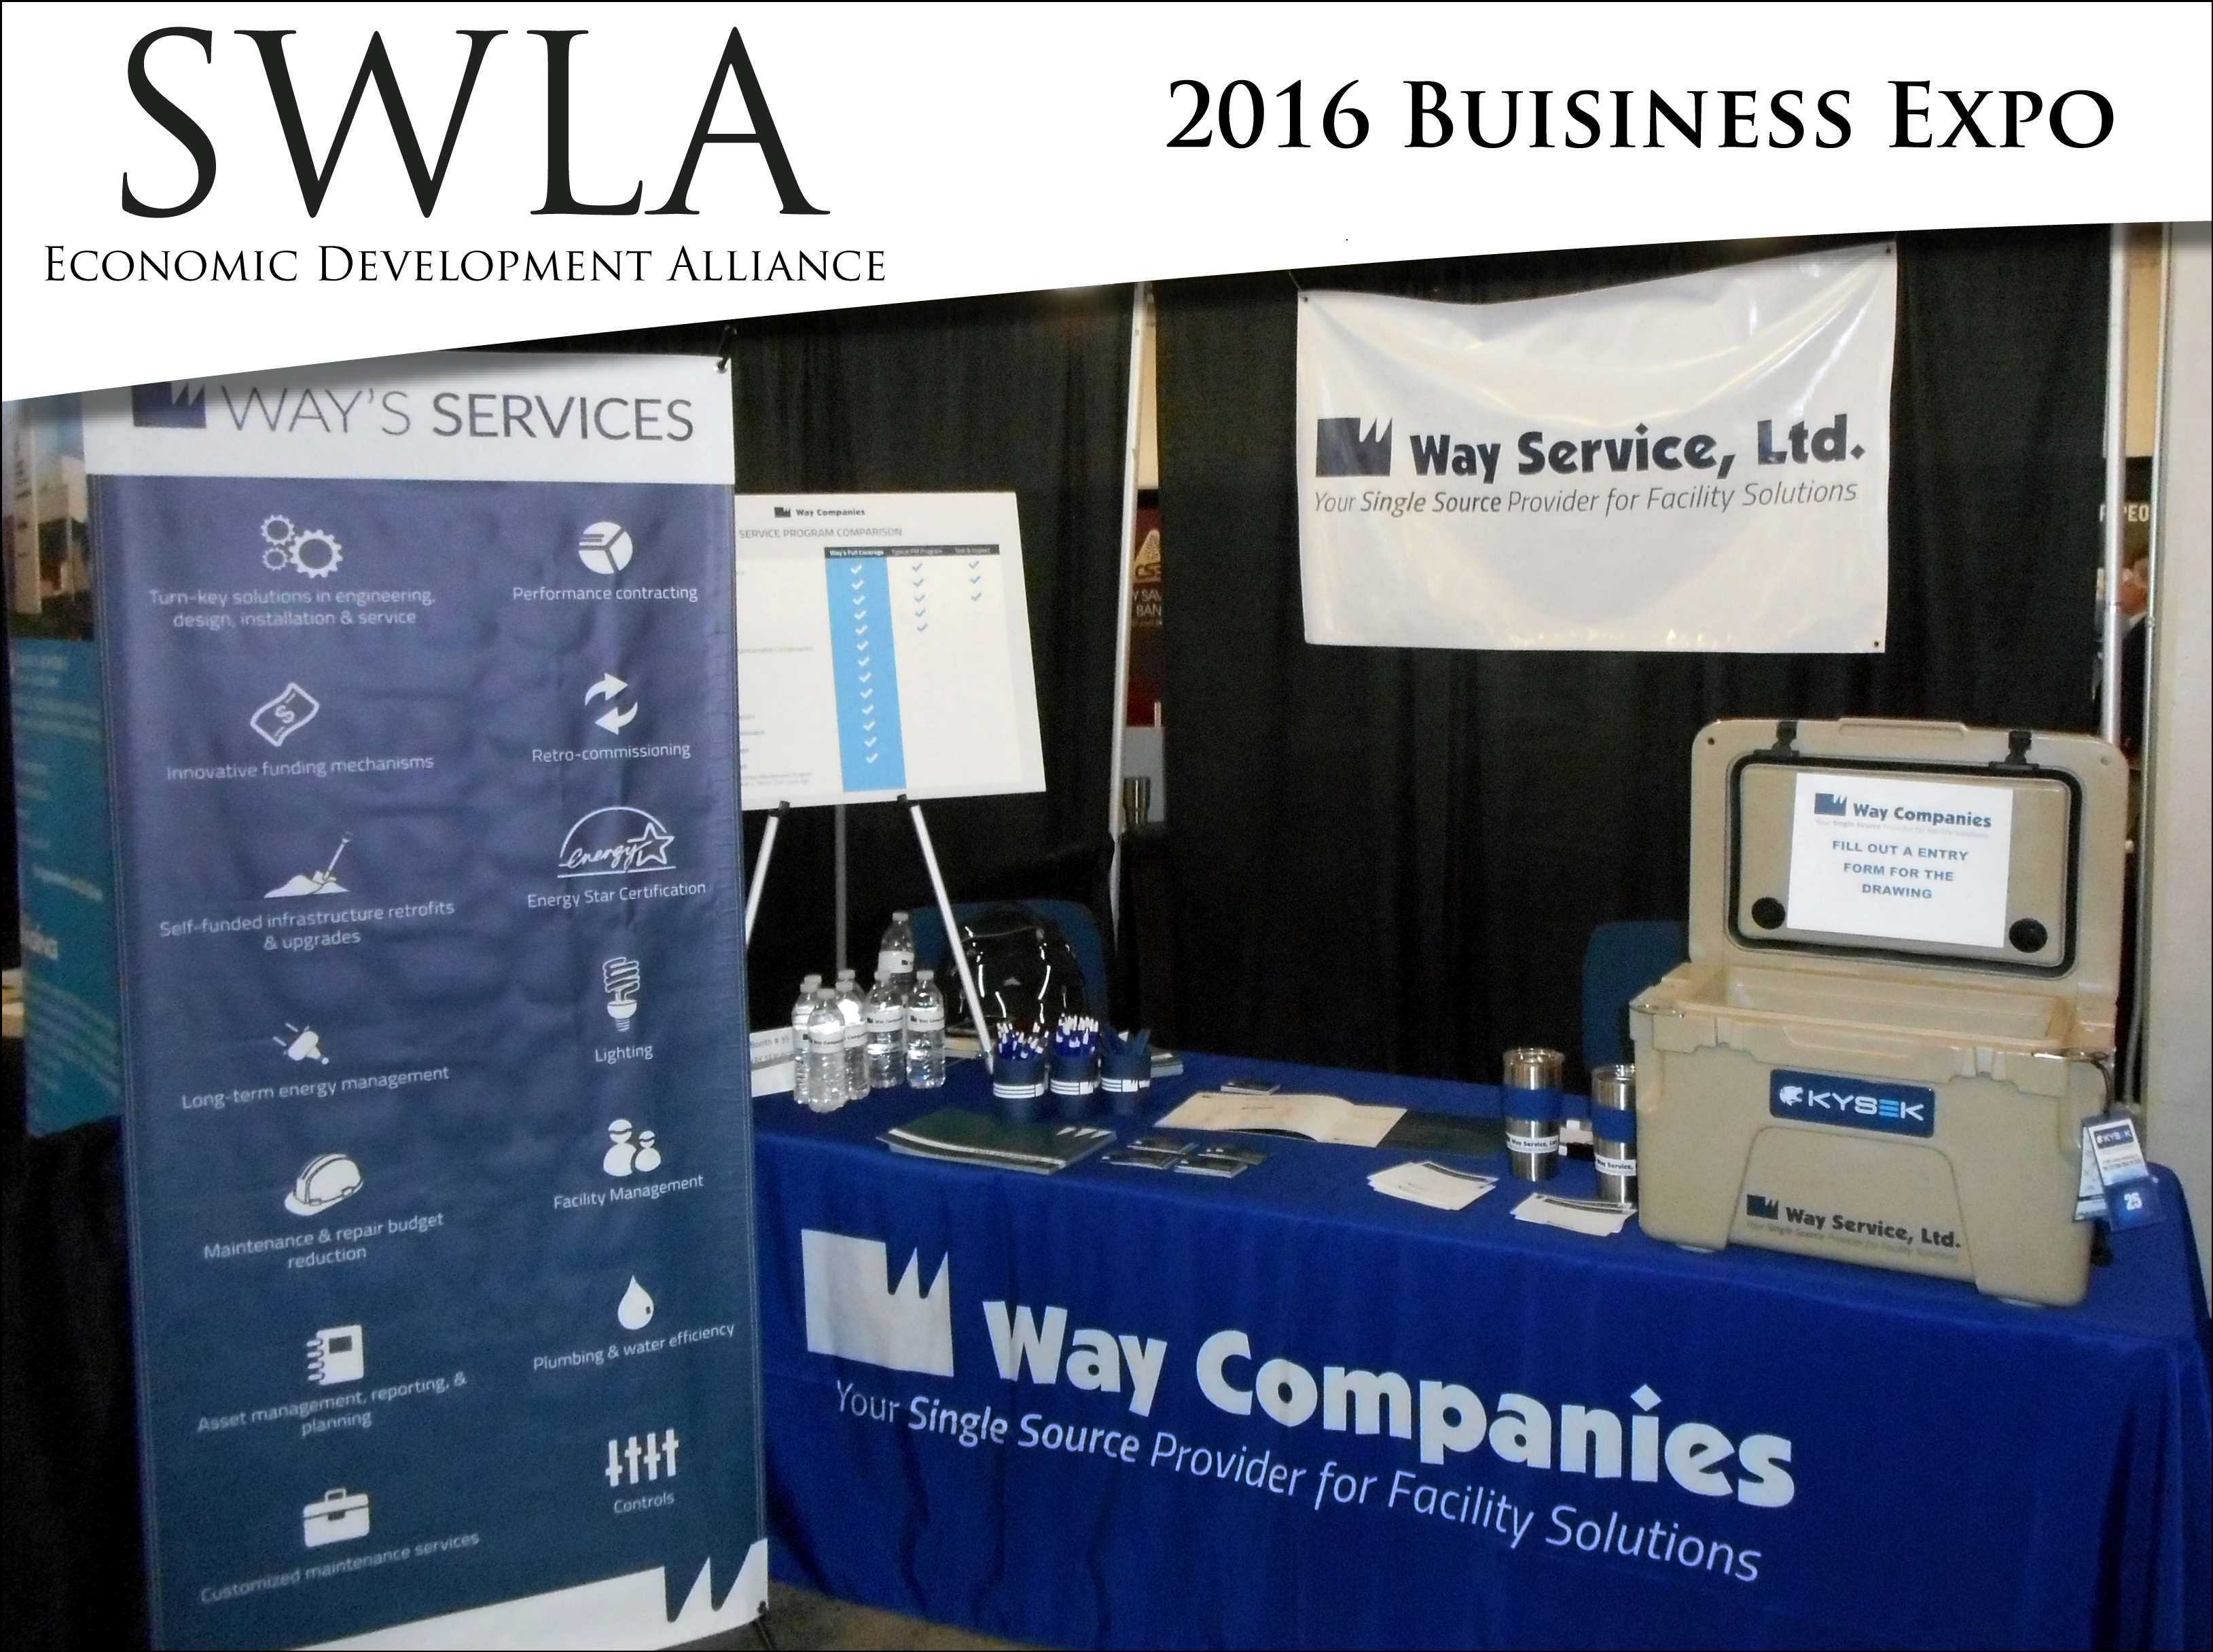 Way Companies' PACE table at SWLA Expo.